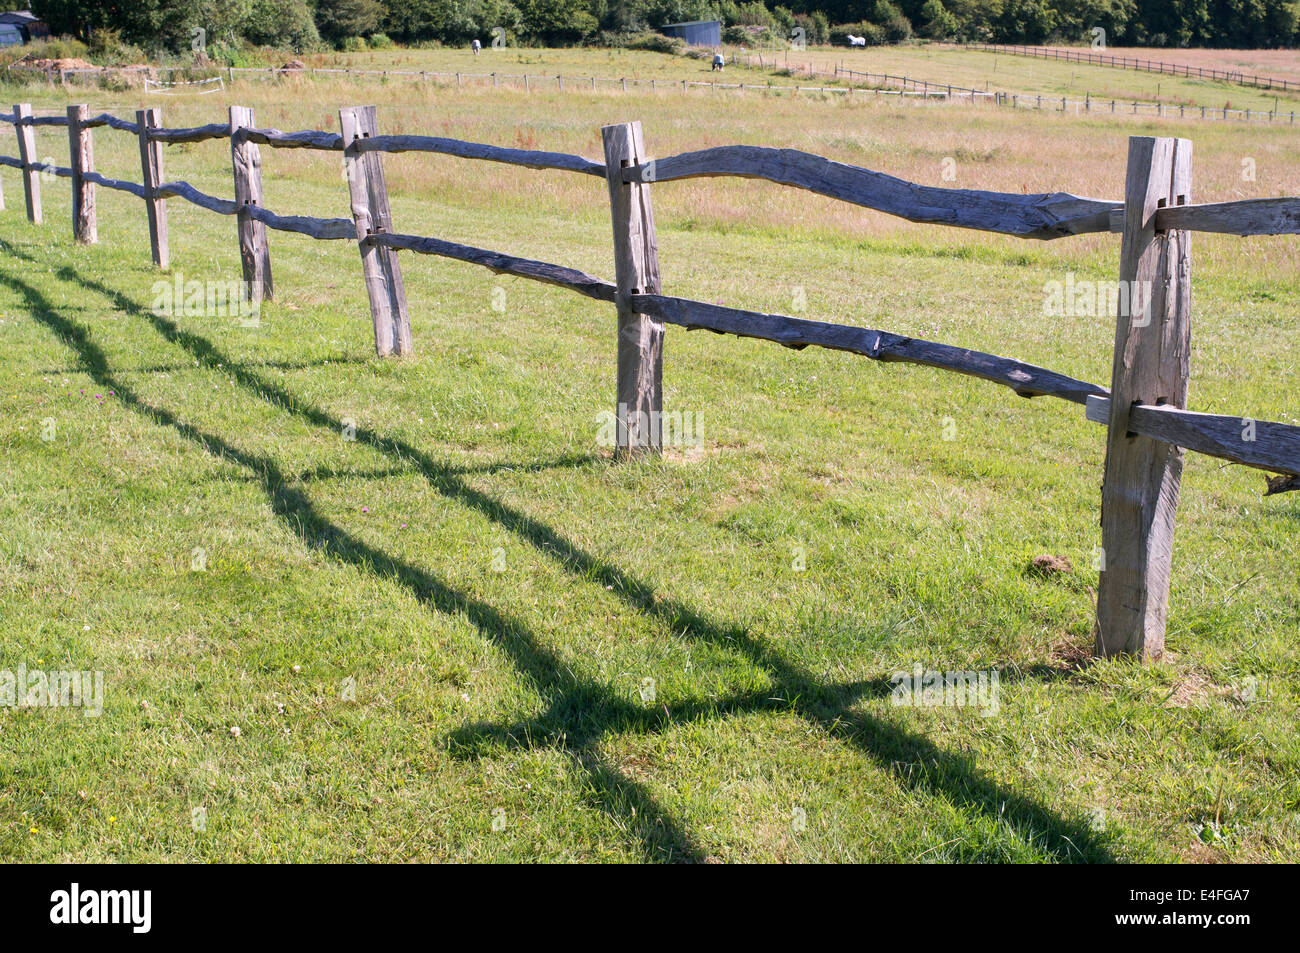 Post And Rail Fence High Resolution Stock Photography And Images Alamy